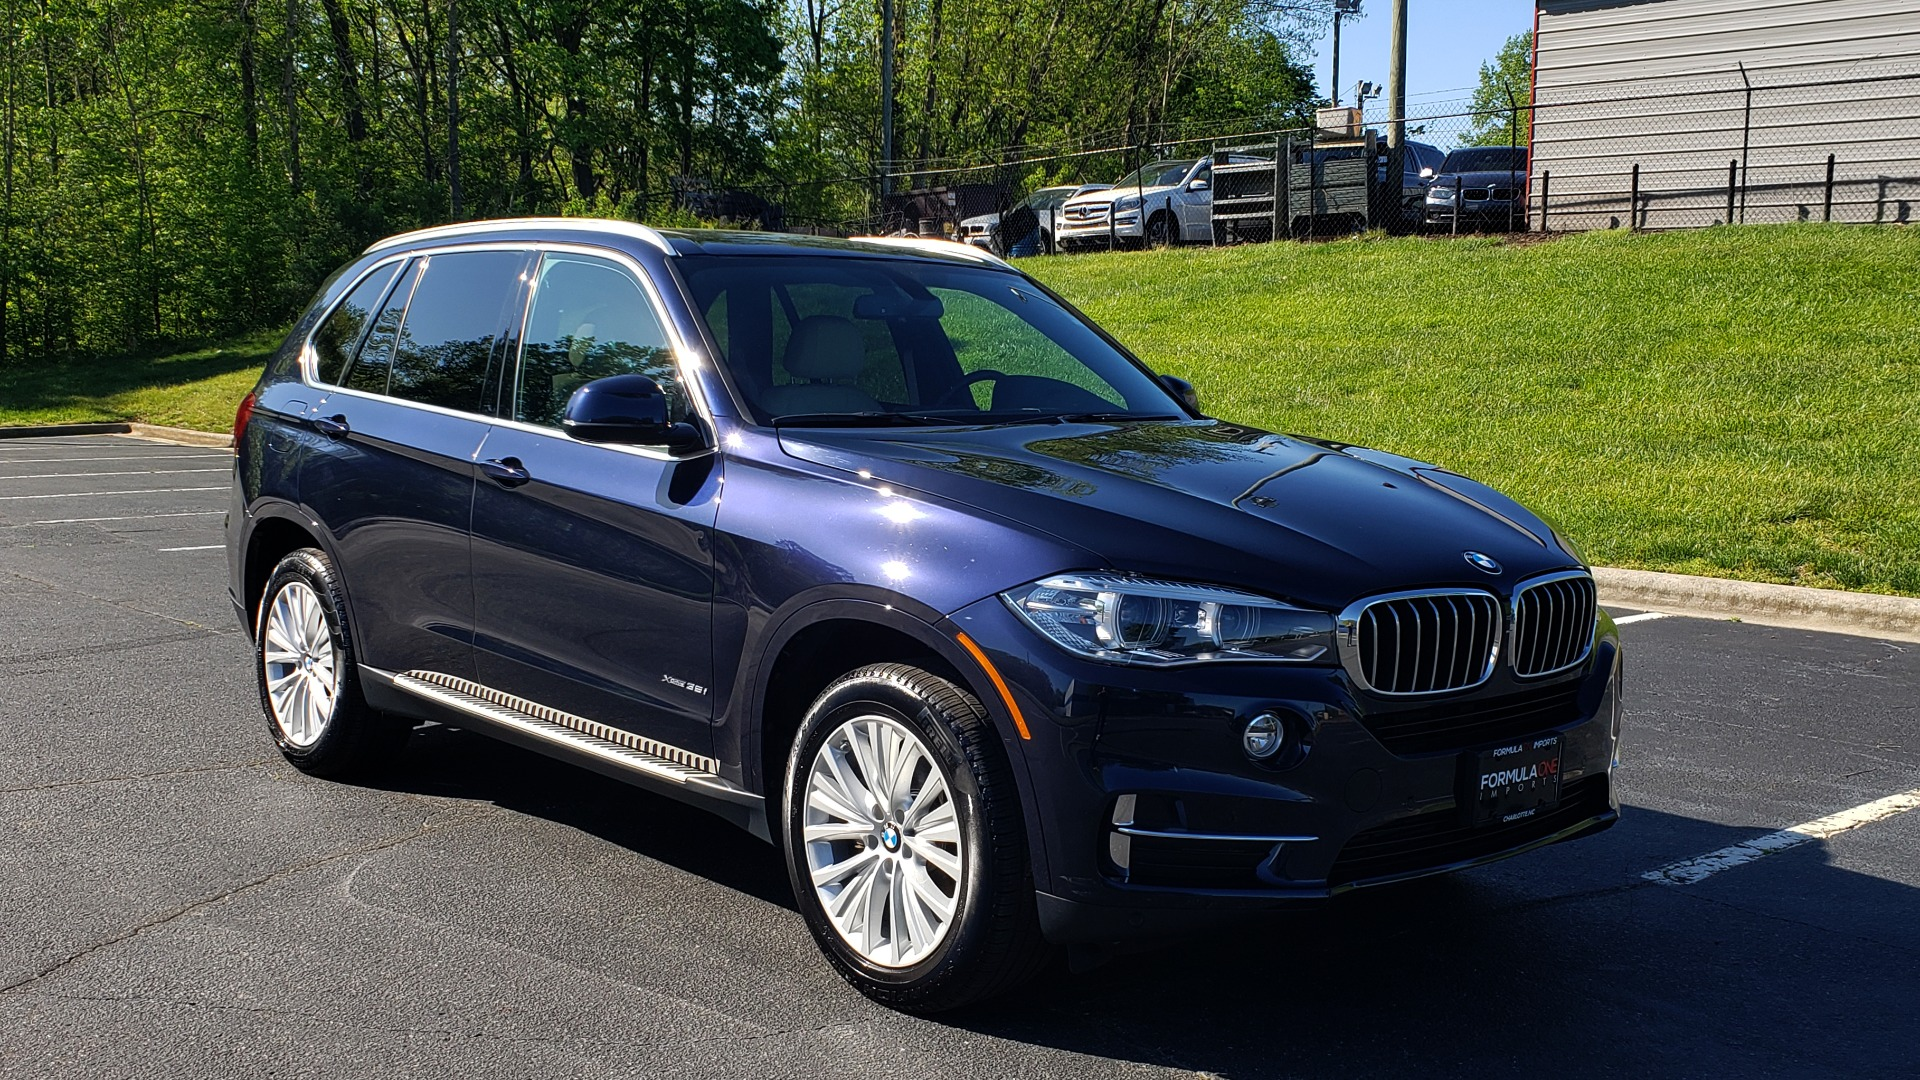 Used 2017 BMW X5 XDRIVE35I PREMIUM / LUXURY / NAV / SUNROOF / REARVIEW for sale $31,995 at Formula Imports in Charlotte NC 28227 4